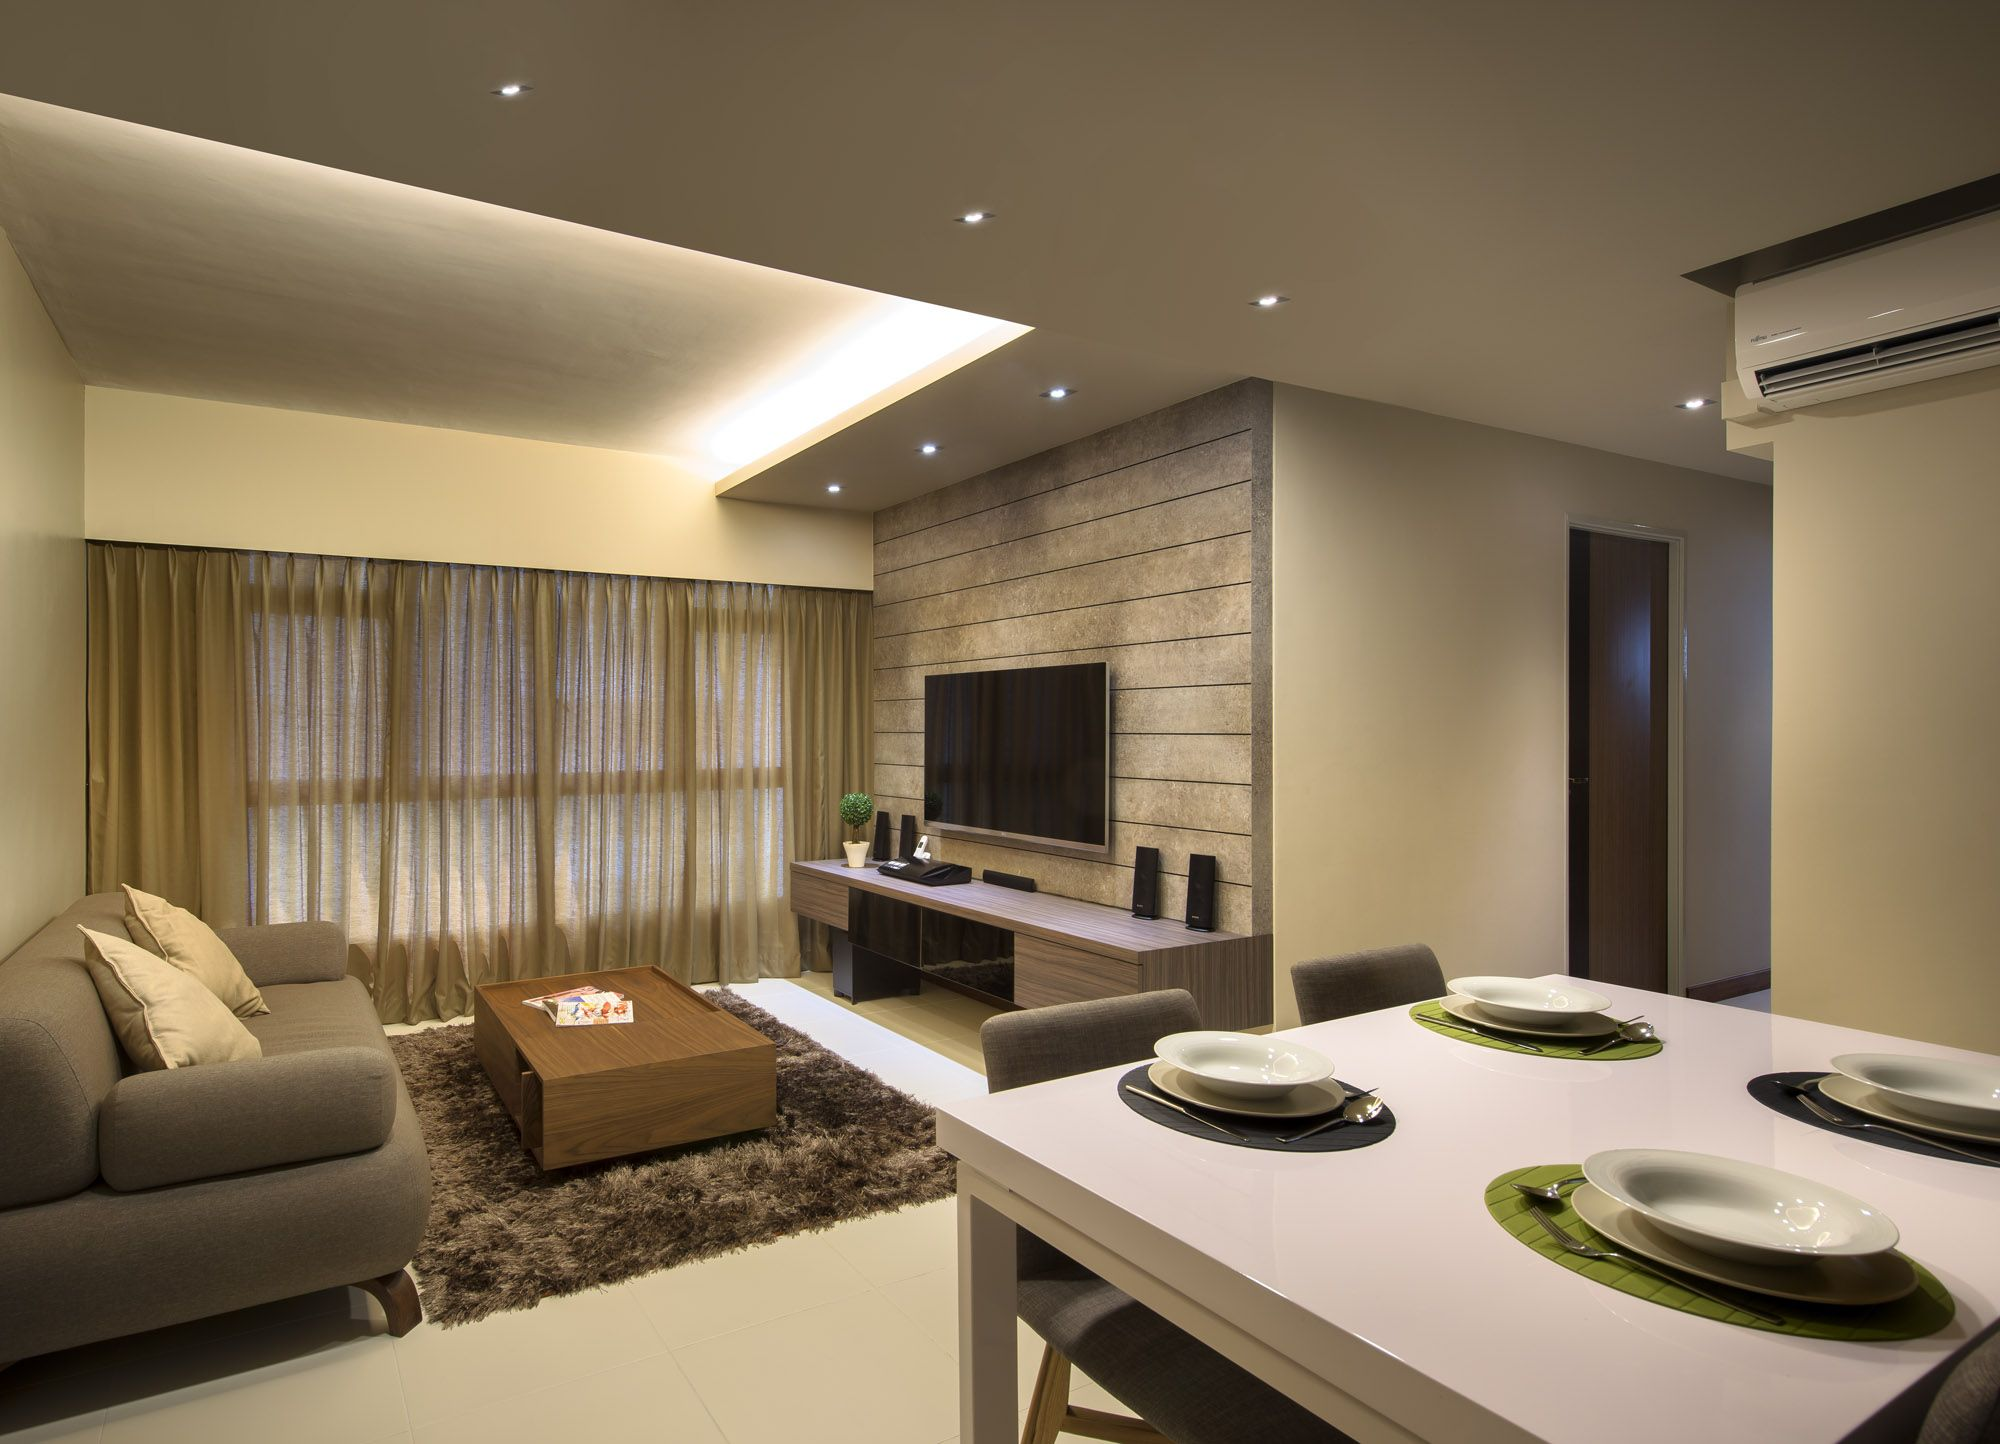 Rezt relax interior design and renovation singapore for Home decor interior design